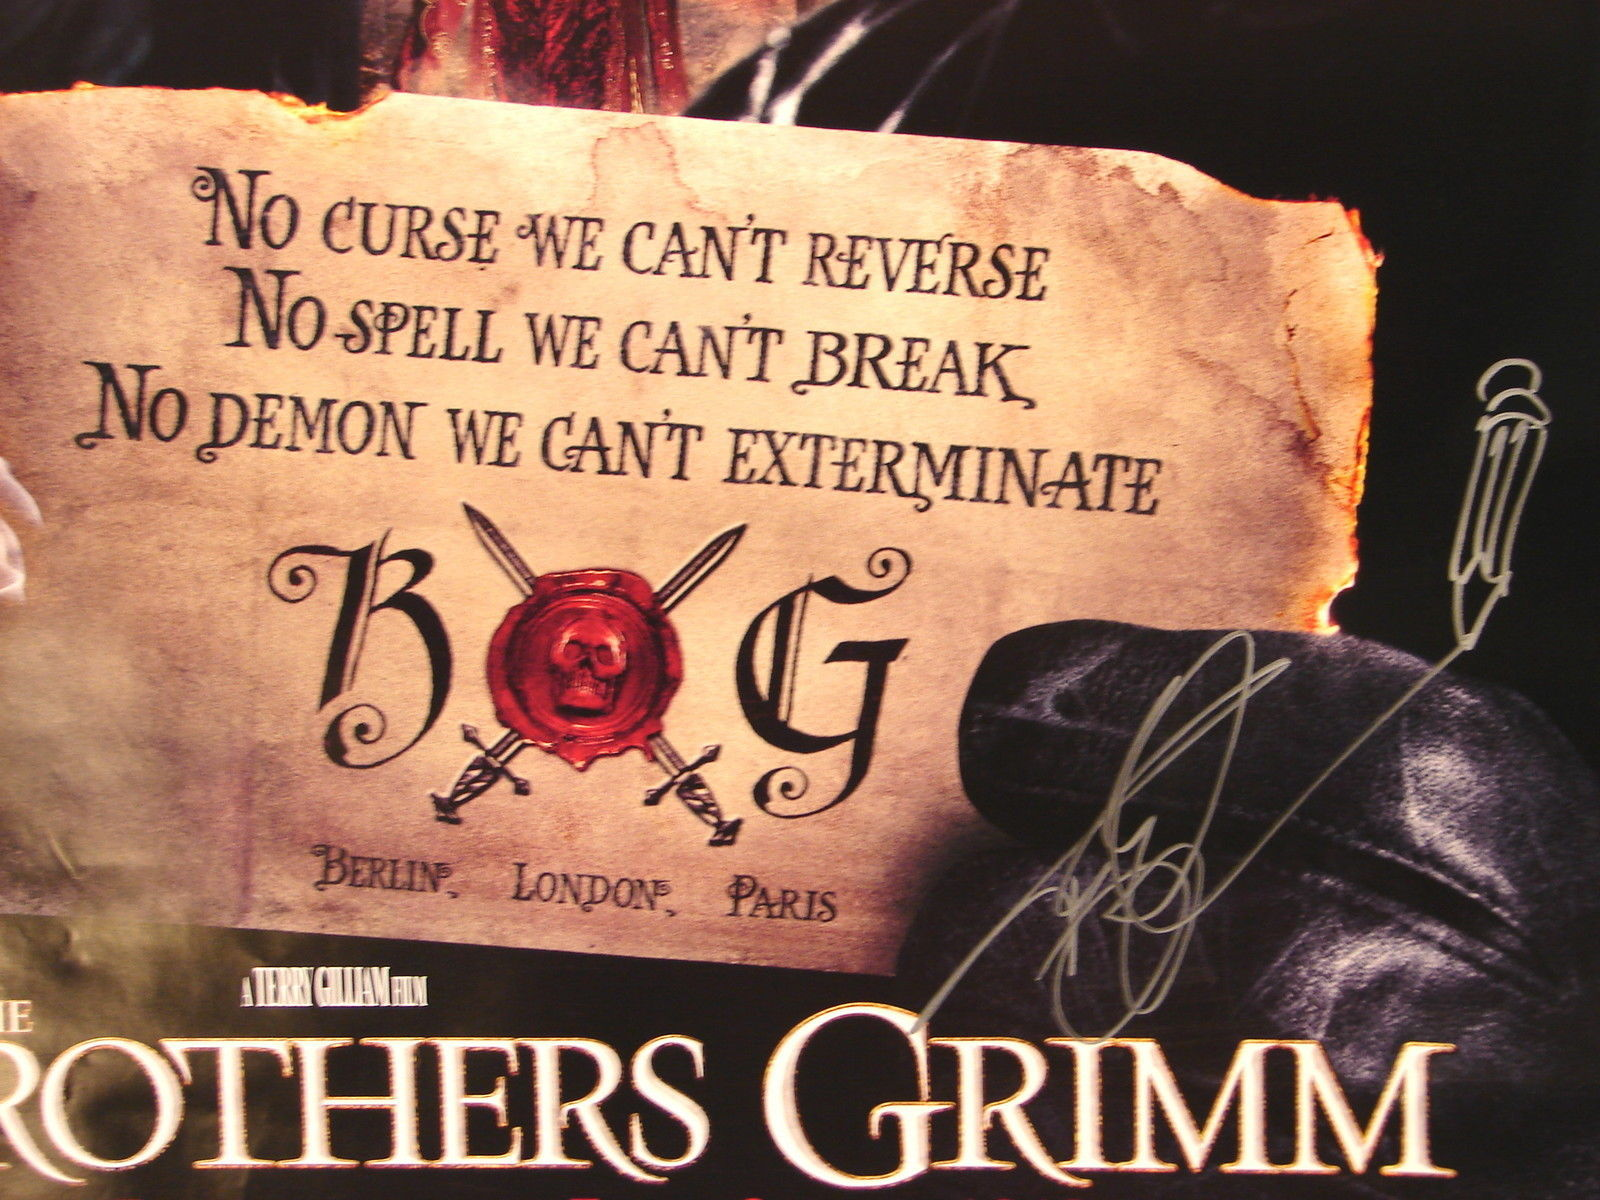 2005 THE BROTHERS GRIMM Movie POSTER 27x40 SIGNED TERRY GILLIAM Double Sided